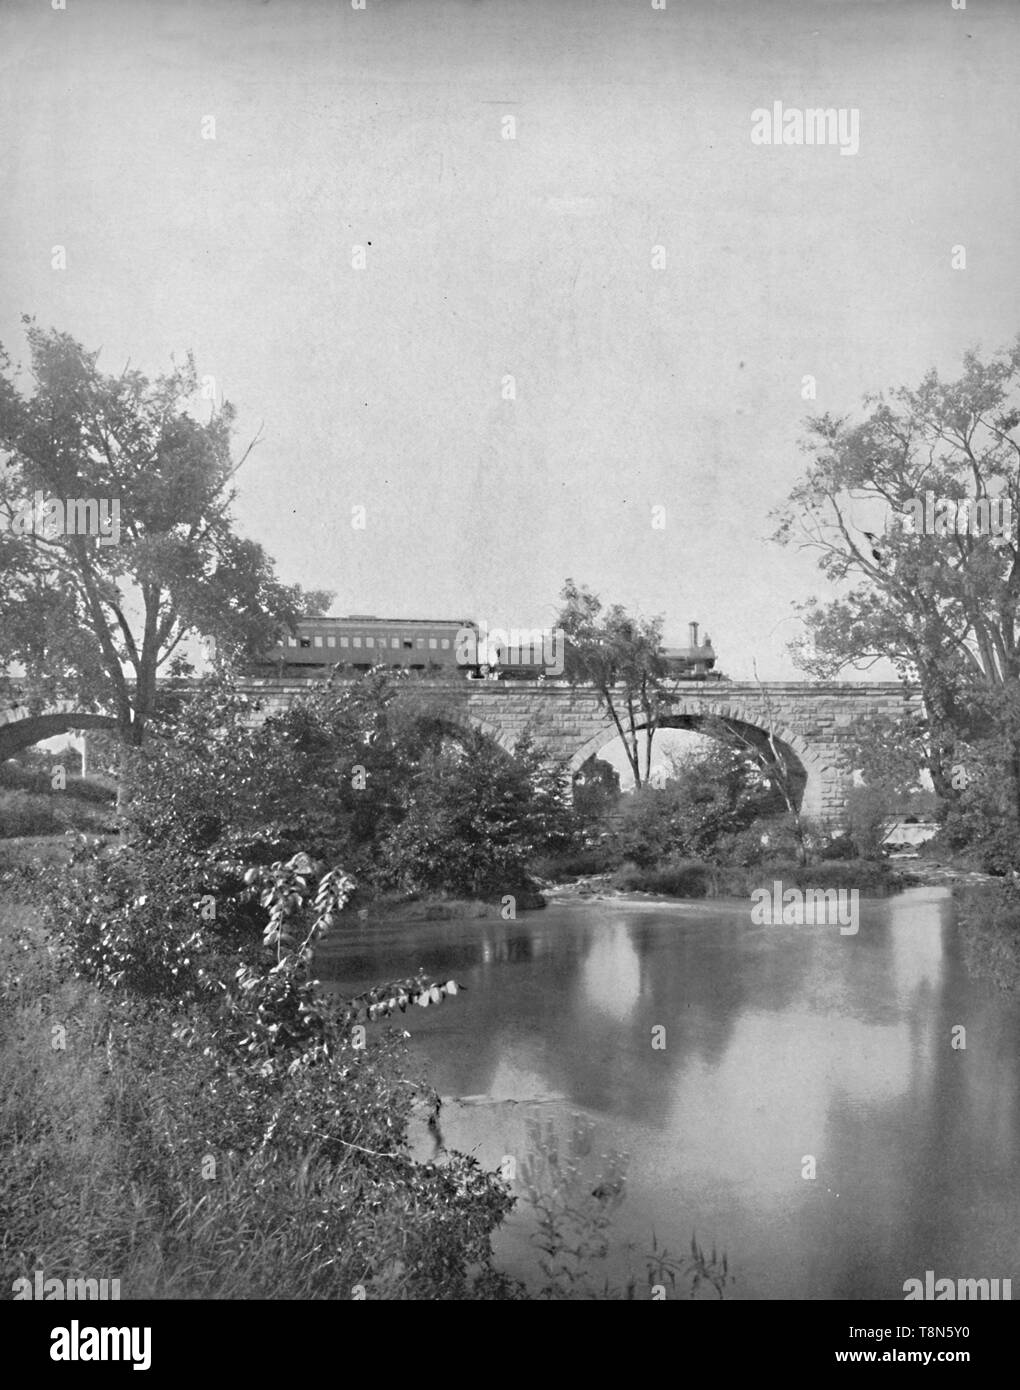 """'Mill Creek Bridge, Pennsylvania Railroad', c1897. Locomotive pulling carriage on stone arch bridge over Mill Creek. From """"A Tour Through the New World America"""", by Prof. Geo. R. Cromwell. [C. N. Greig & Co., London, c1897] - Stock Image"""